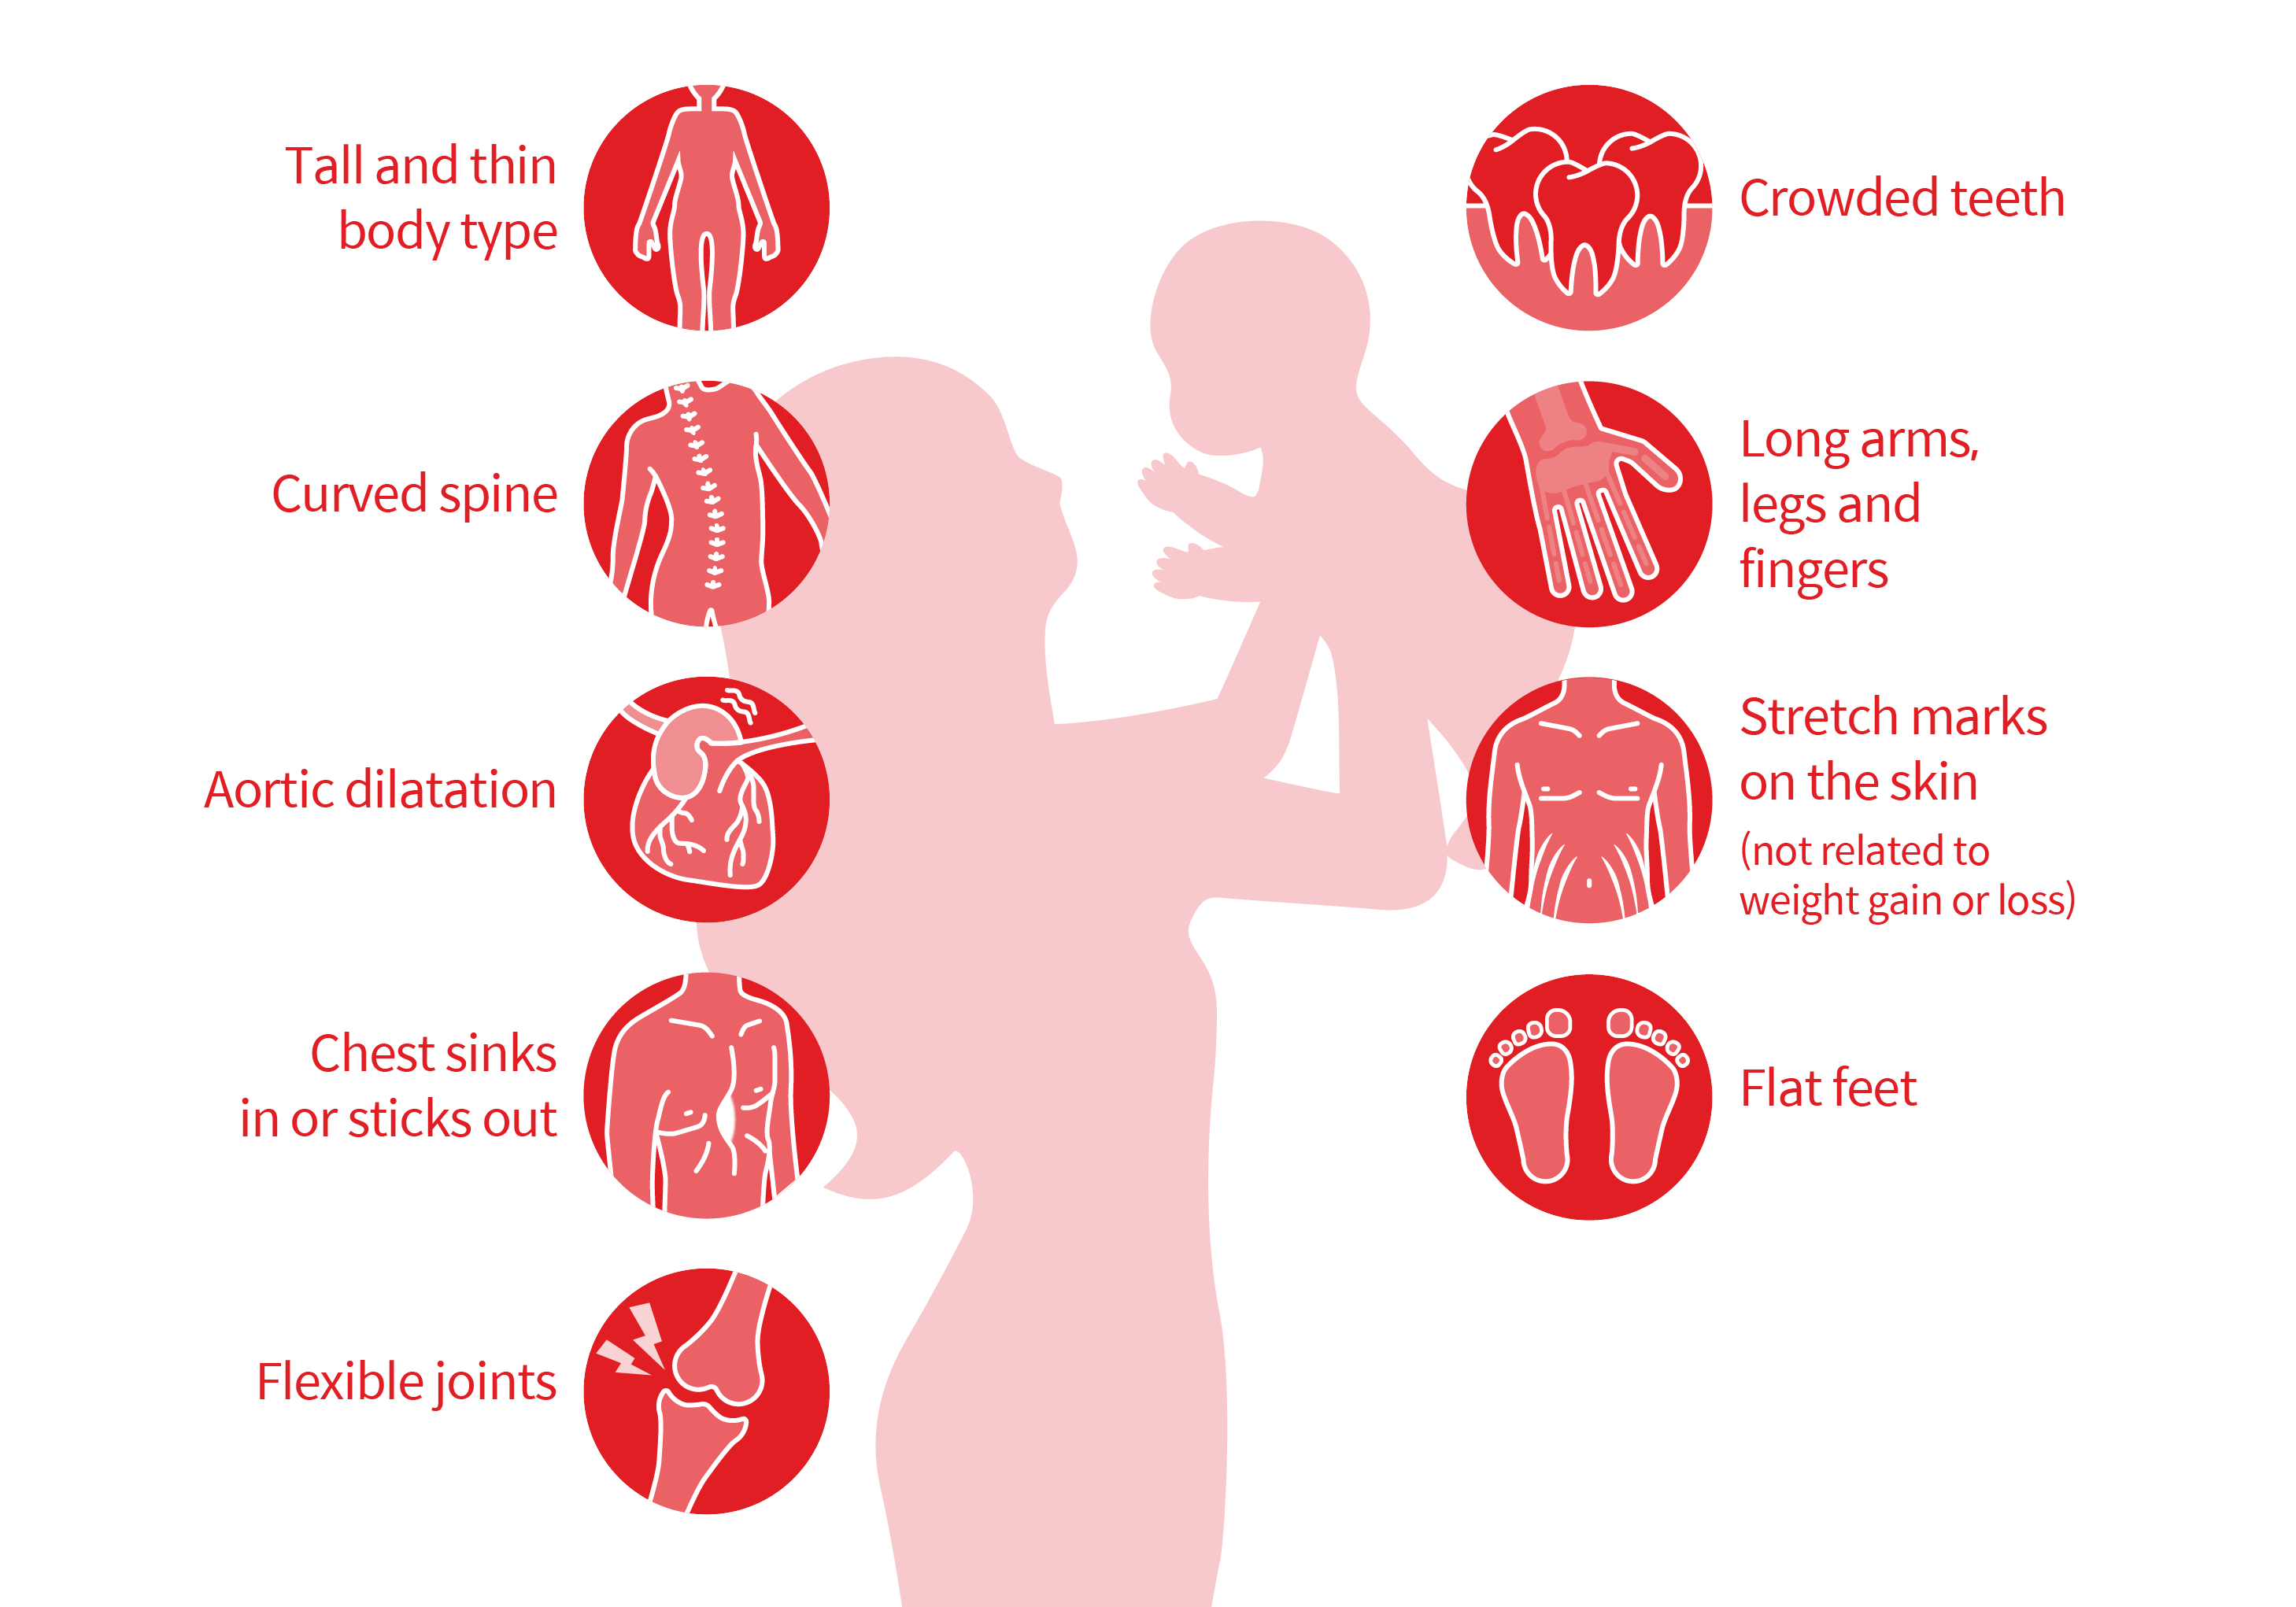 Nine symptoms: Long arms, legs and fingers, Tall and thin body type, Curved spine, Chest sinks in or sticks out, Flexible joints, Aortic dilatation, Flat feet, Crowded teeth, Stretch marks on the skin (not related to weight gain or loss)